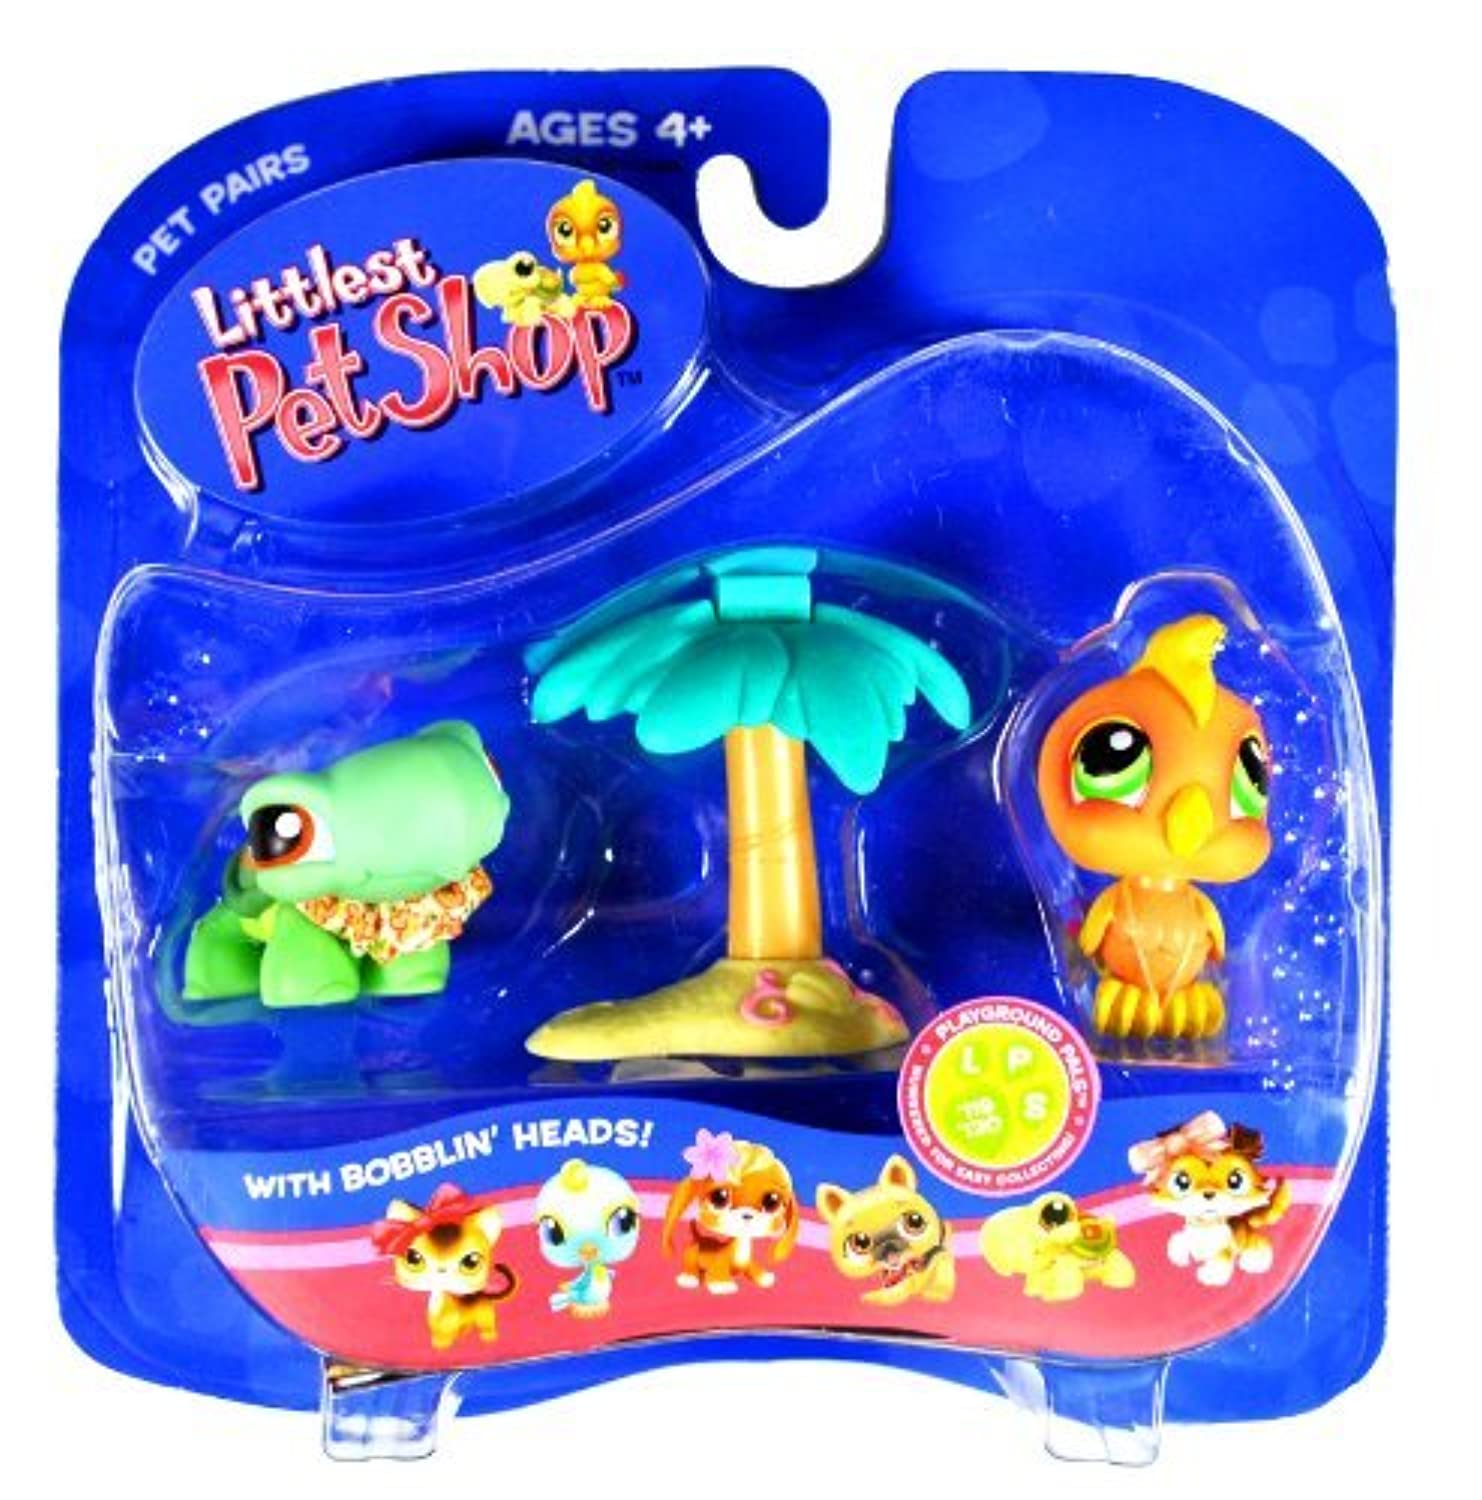 Hasbro Year 2005 Littlest Pet Shop Pet Pairs Playground Pals Series Collectible Bobble Head Pet Figure Set - Green Turtle (#119) with Lei and Orange Cockatoo Bird (#120) with Island and Palm Tree (51828) by Littlest Pet Shop [並行輸入品]